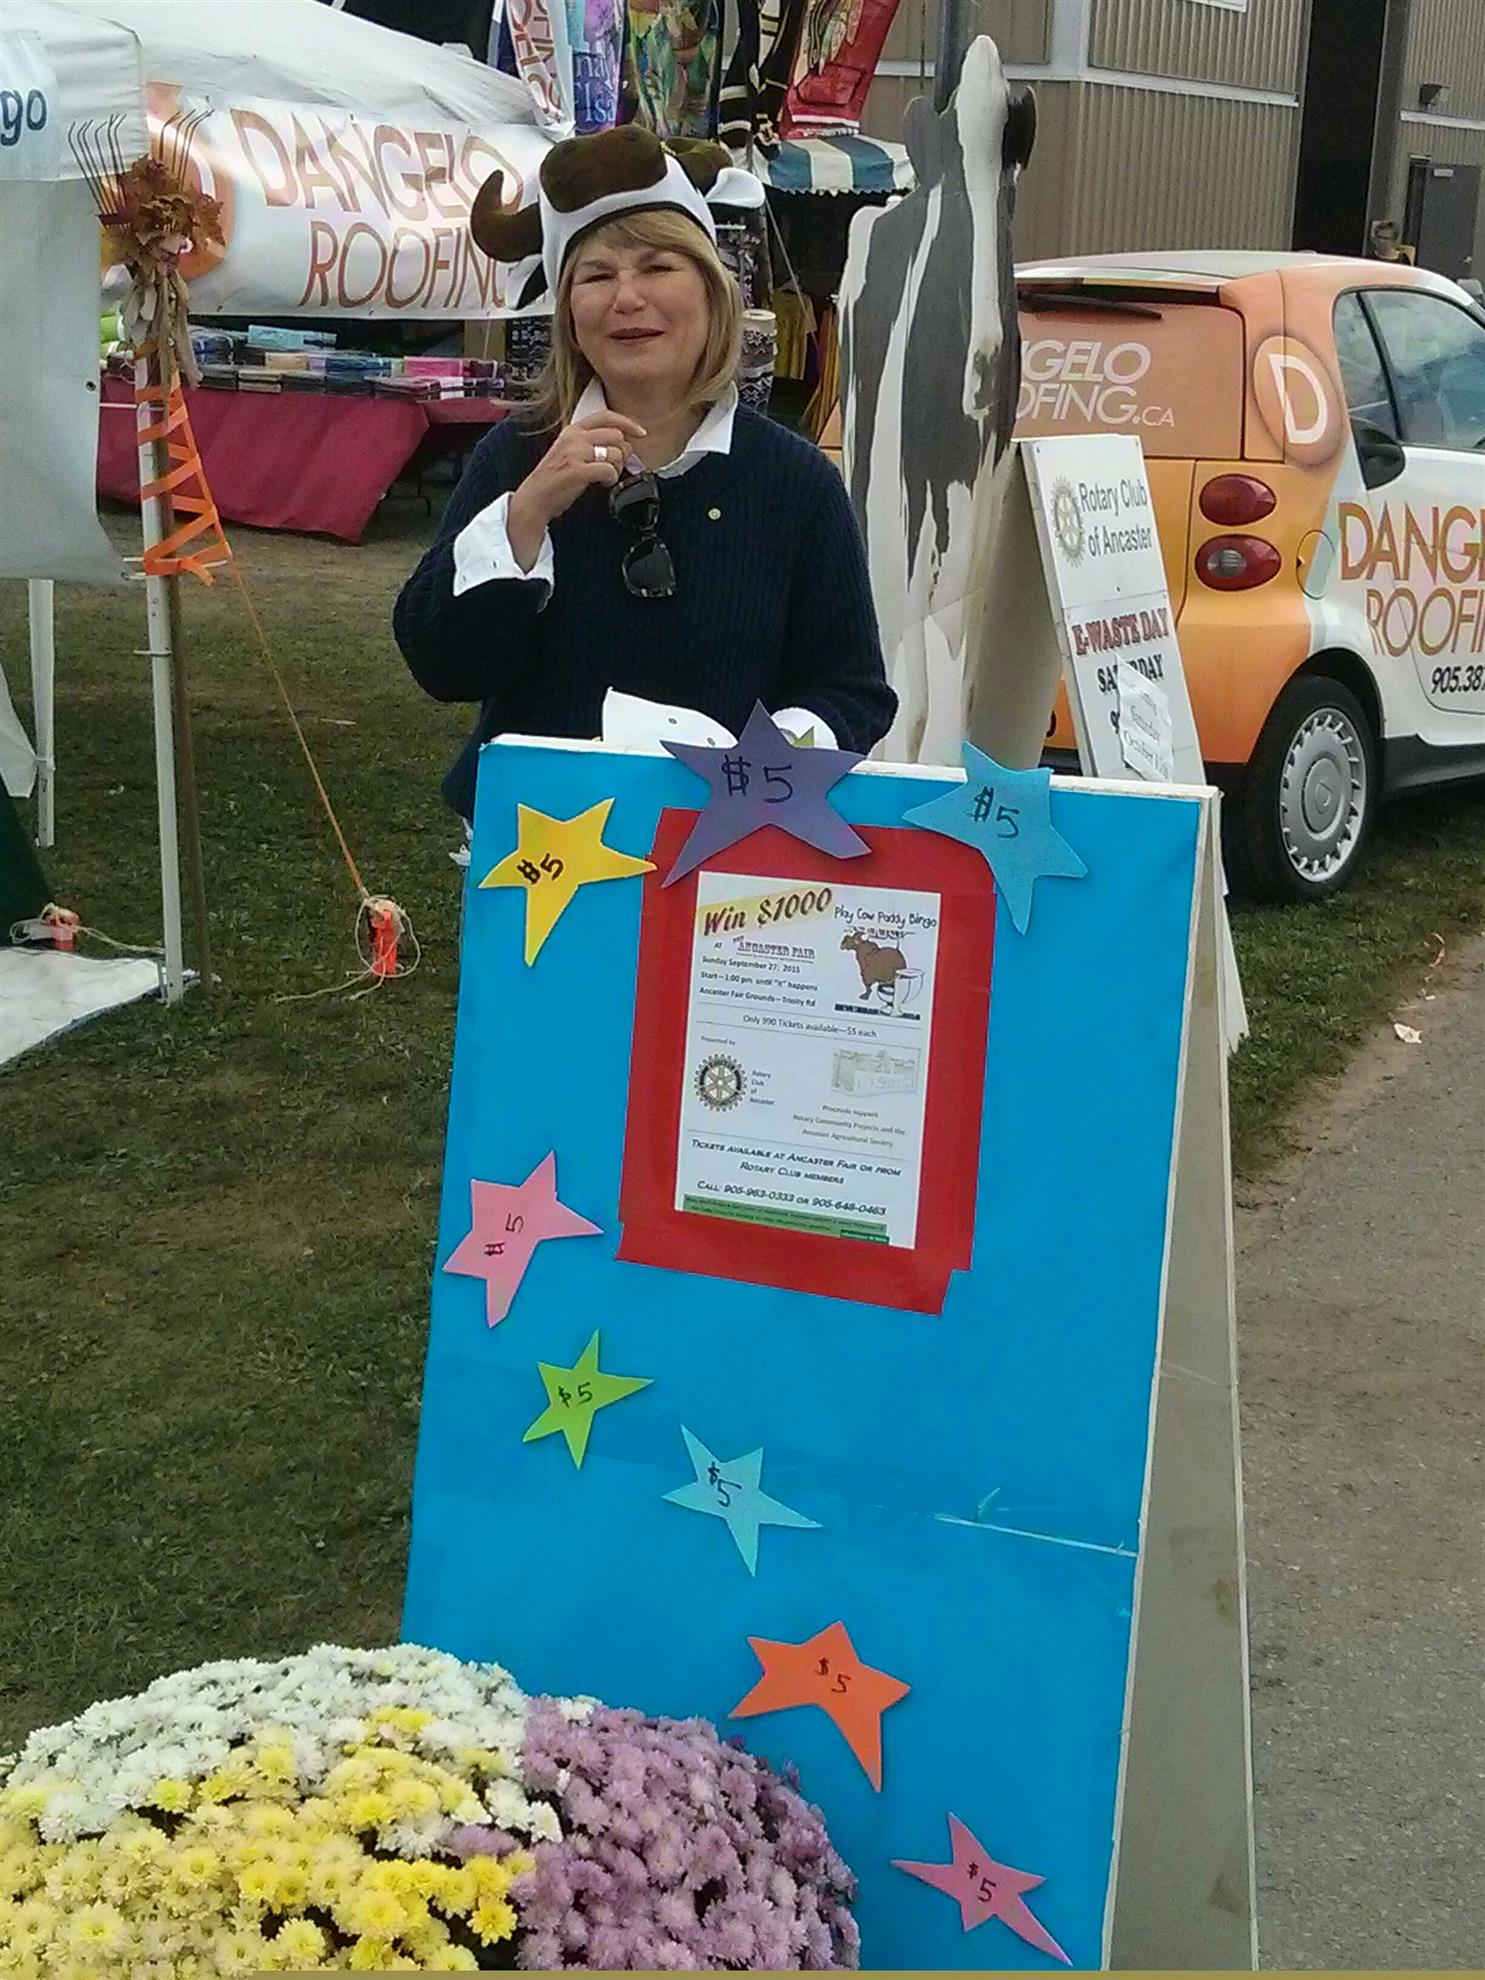 Kathy at Cow Paddy Bingo booth selling tickets